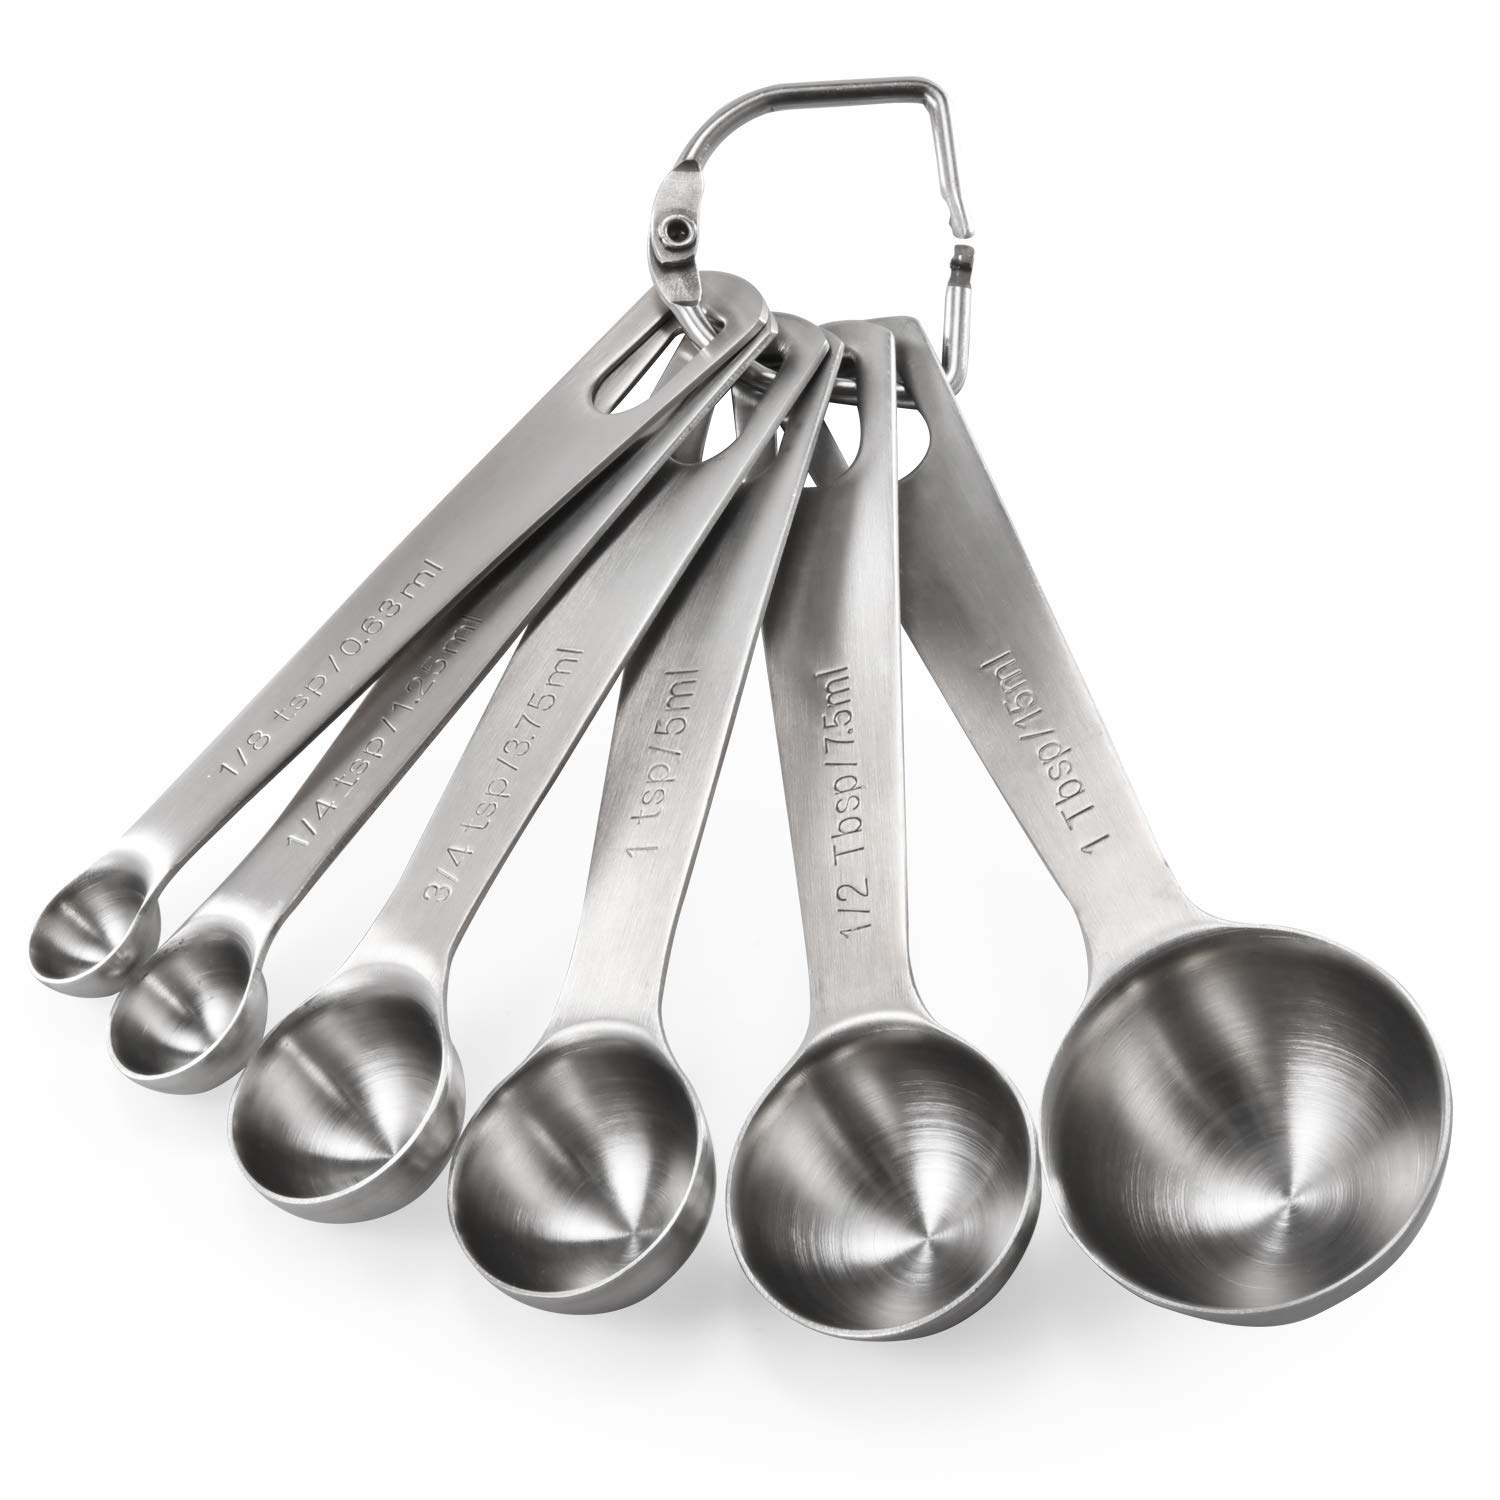 kitchen accessories - Measuring Spoons: U-Taste 18/8 Stainless Steel Measuring Spoons